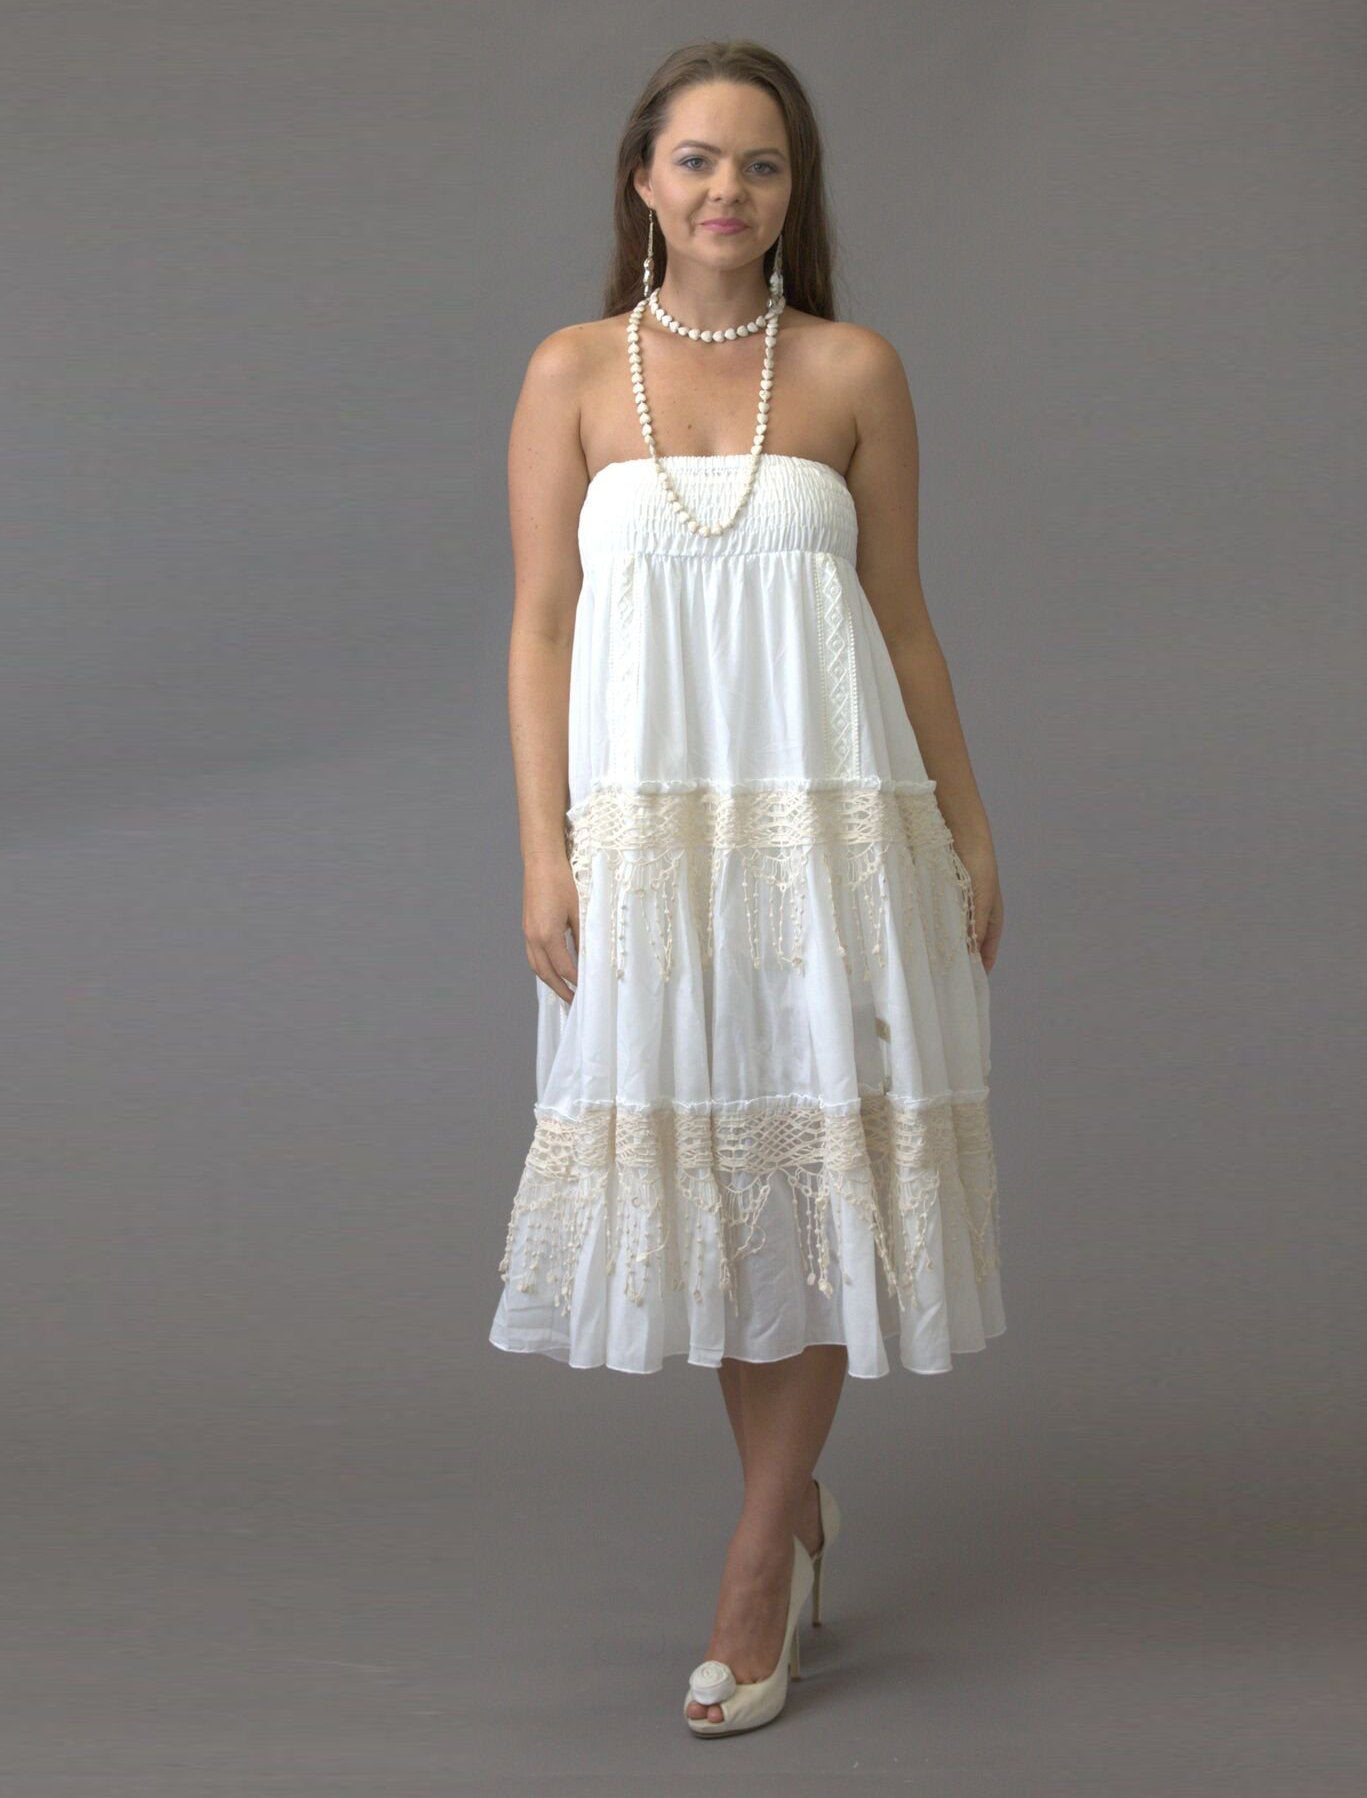 Festival Lace Strapless Dress - Purity Lace Designs